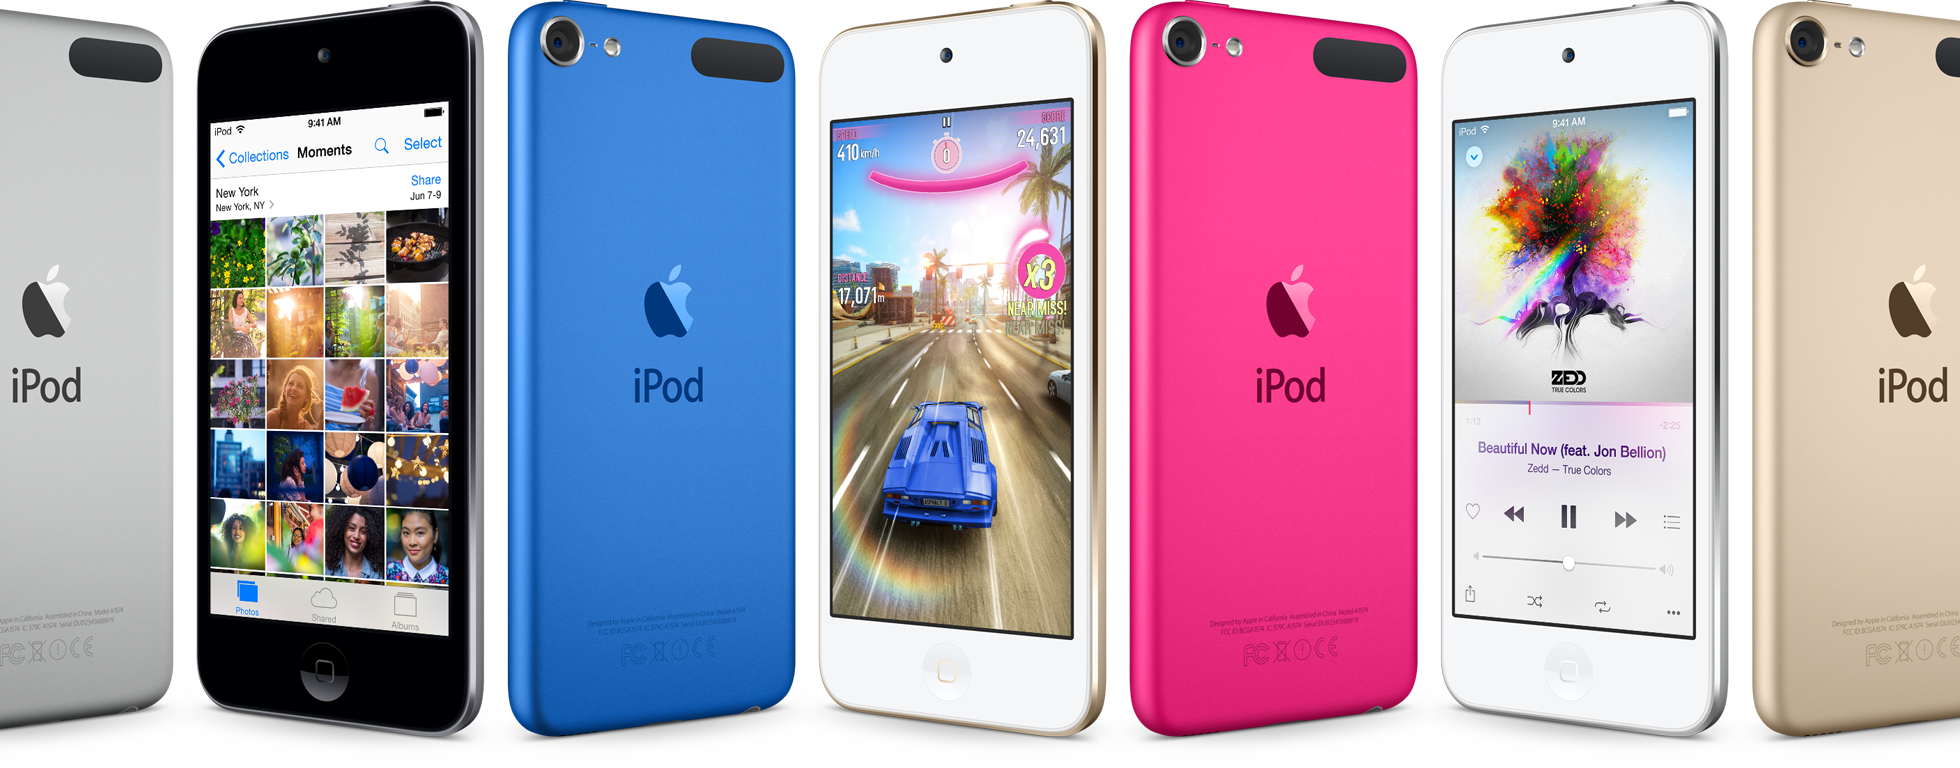 Apple refreshes iPod touch with A8 chip, cheapest iOS device to run Apple Music